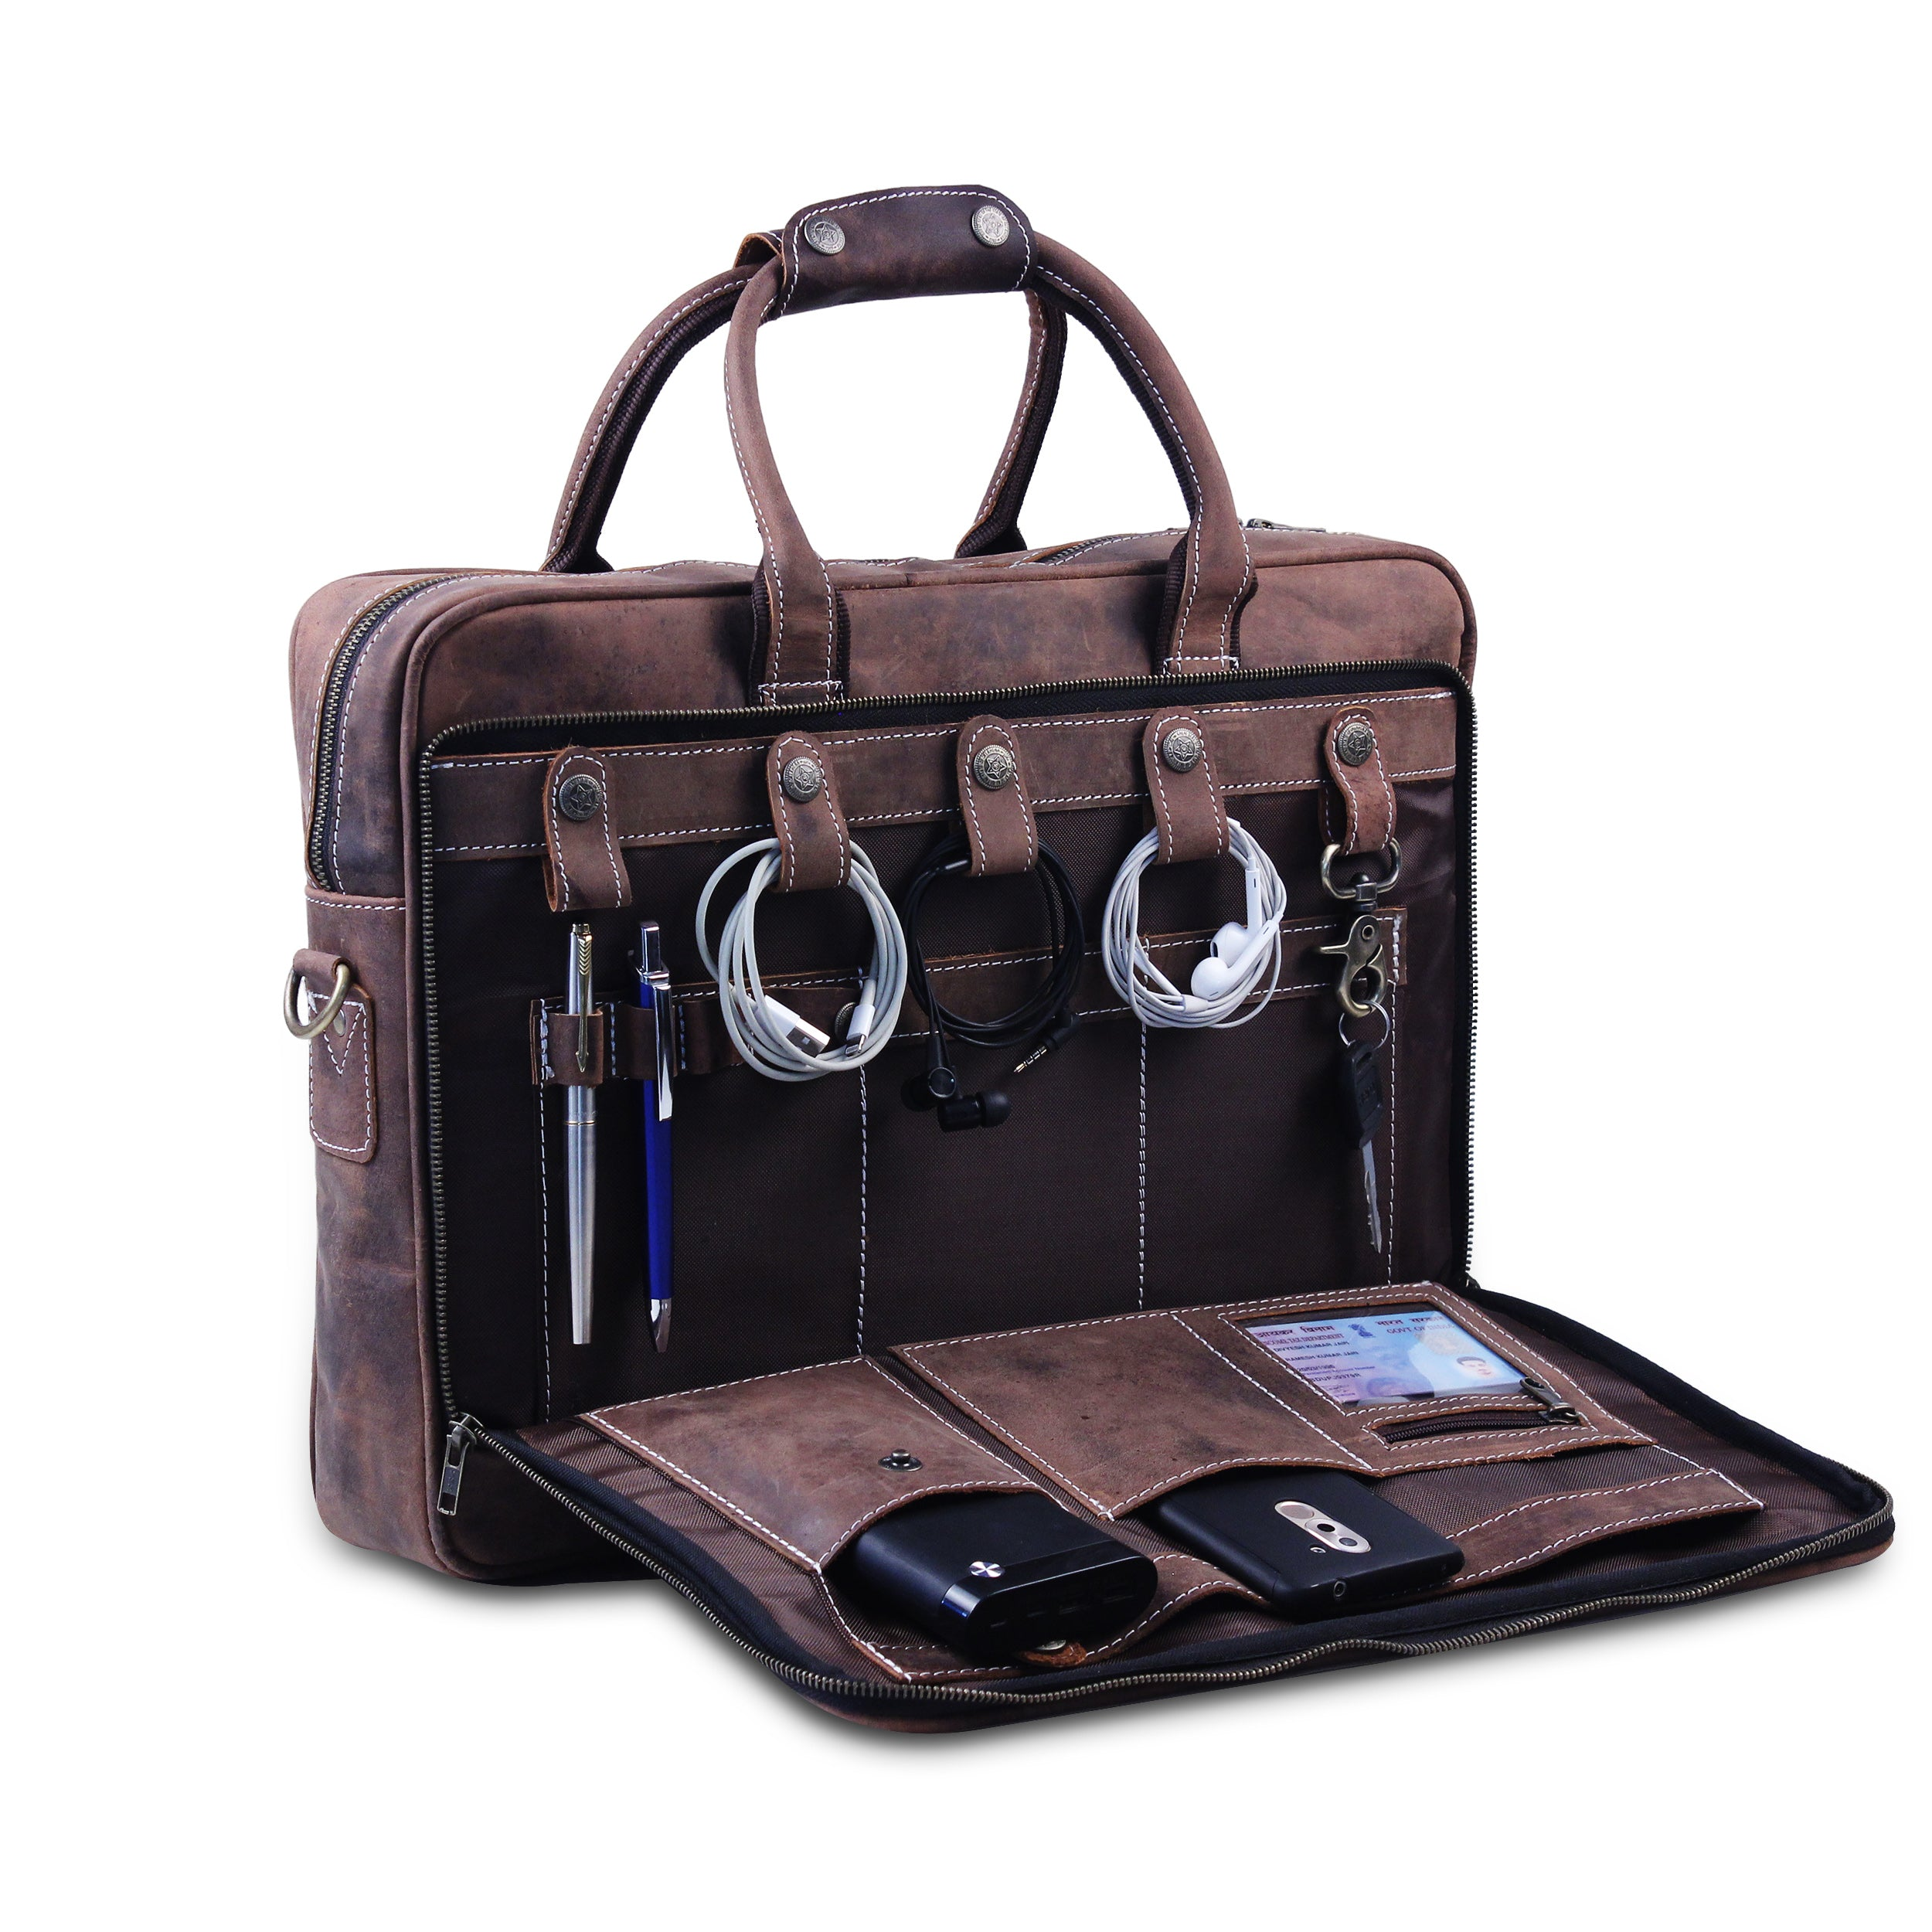 Buffalo Leather Bag with Top Handle For Office use